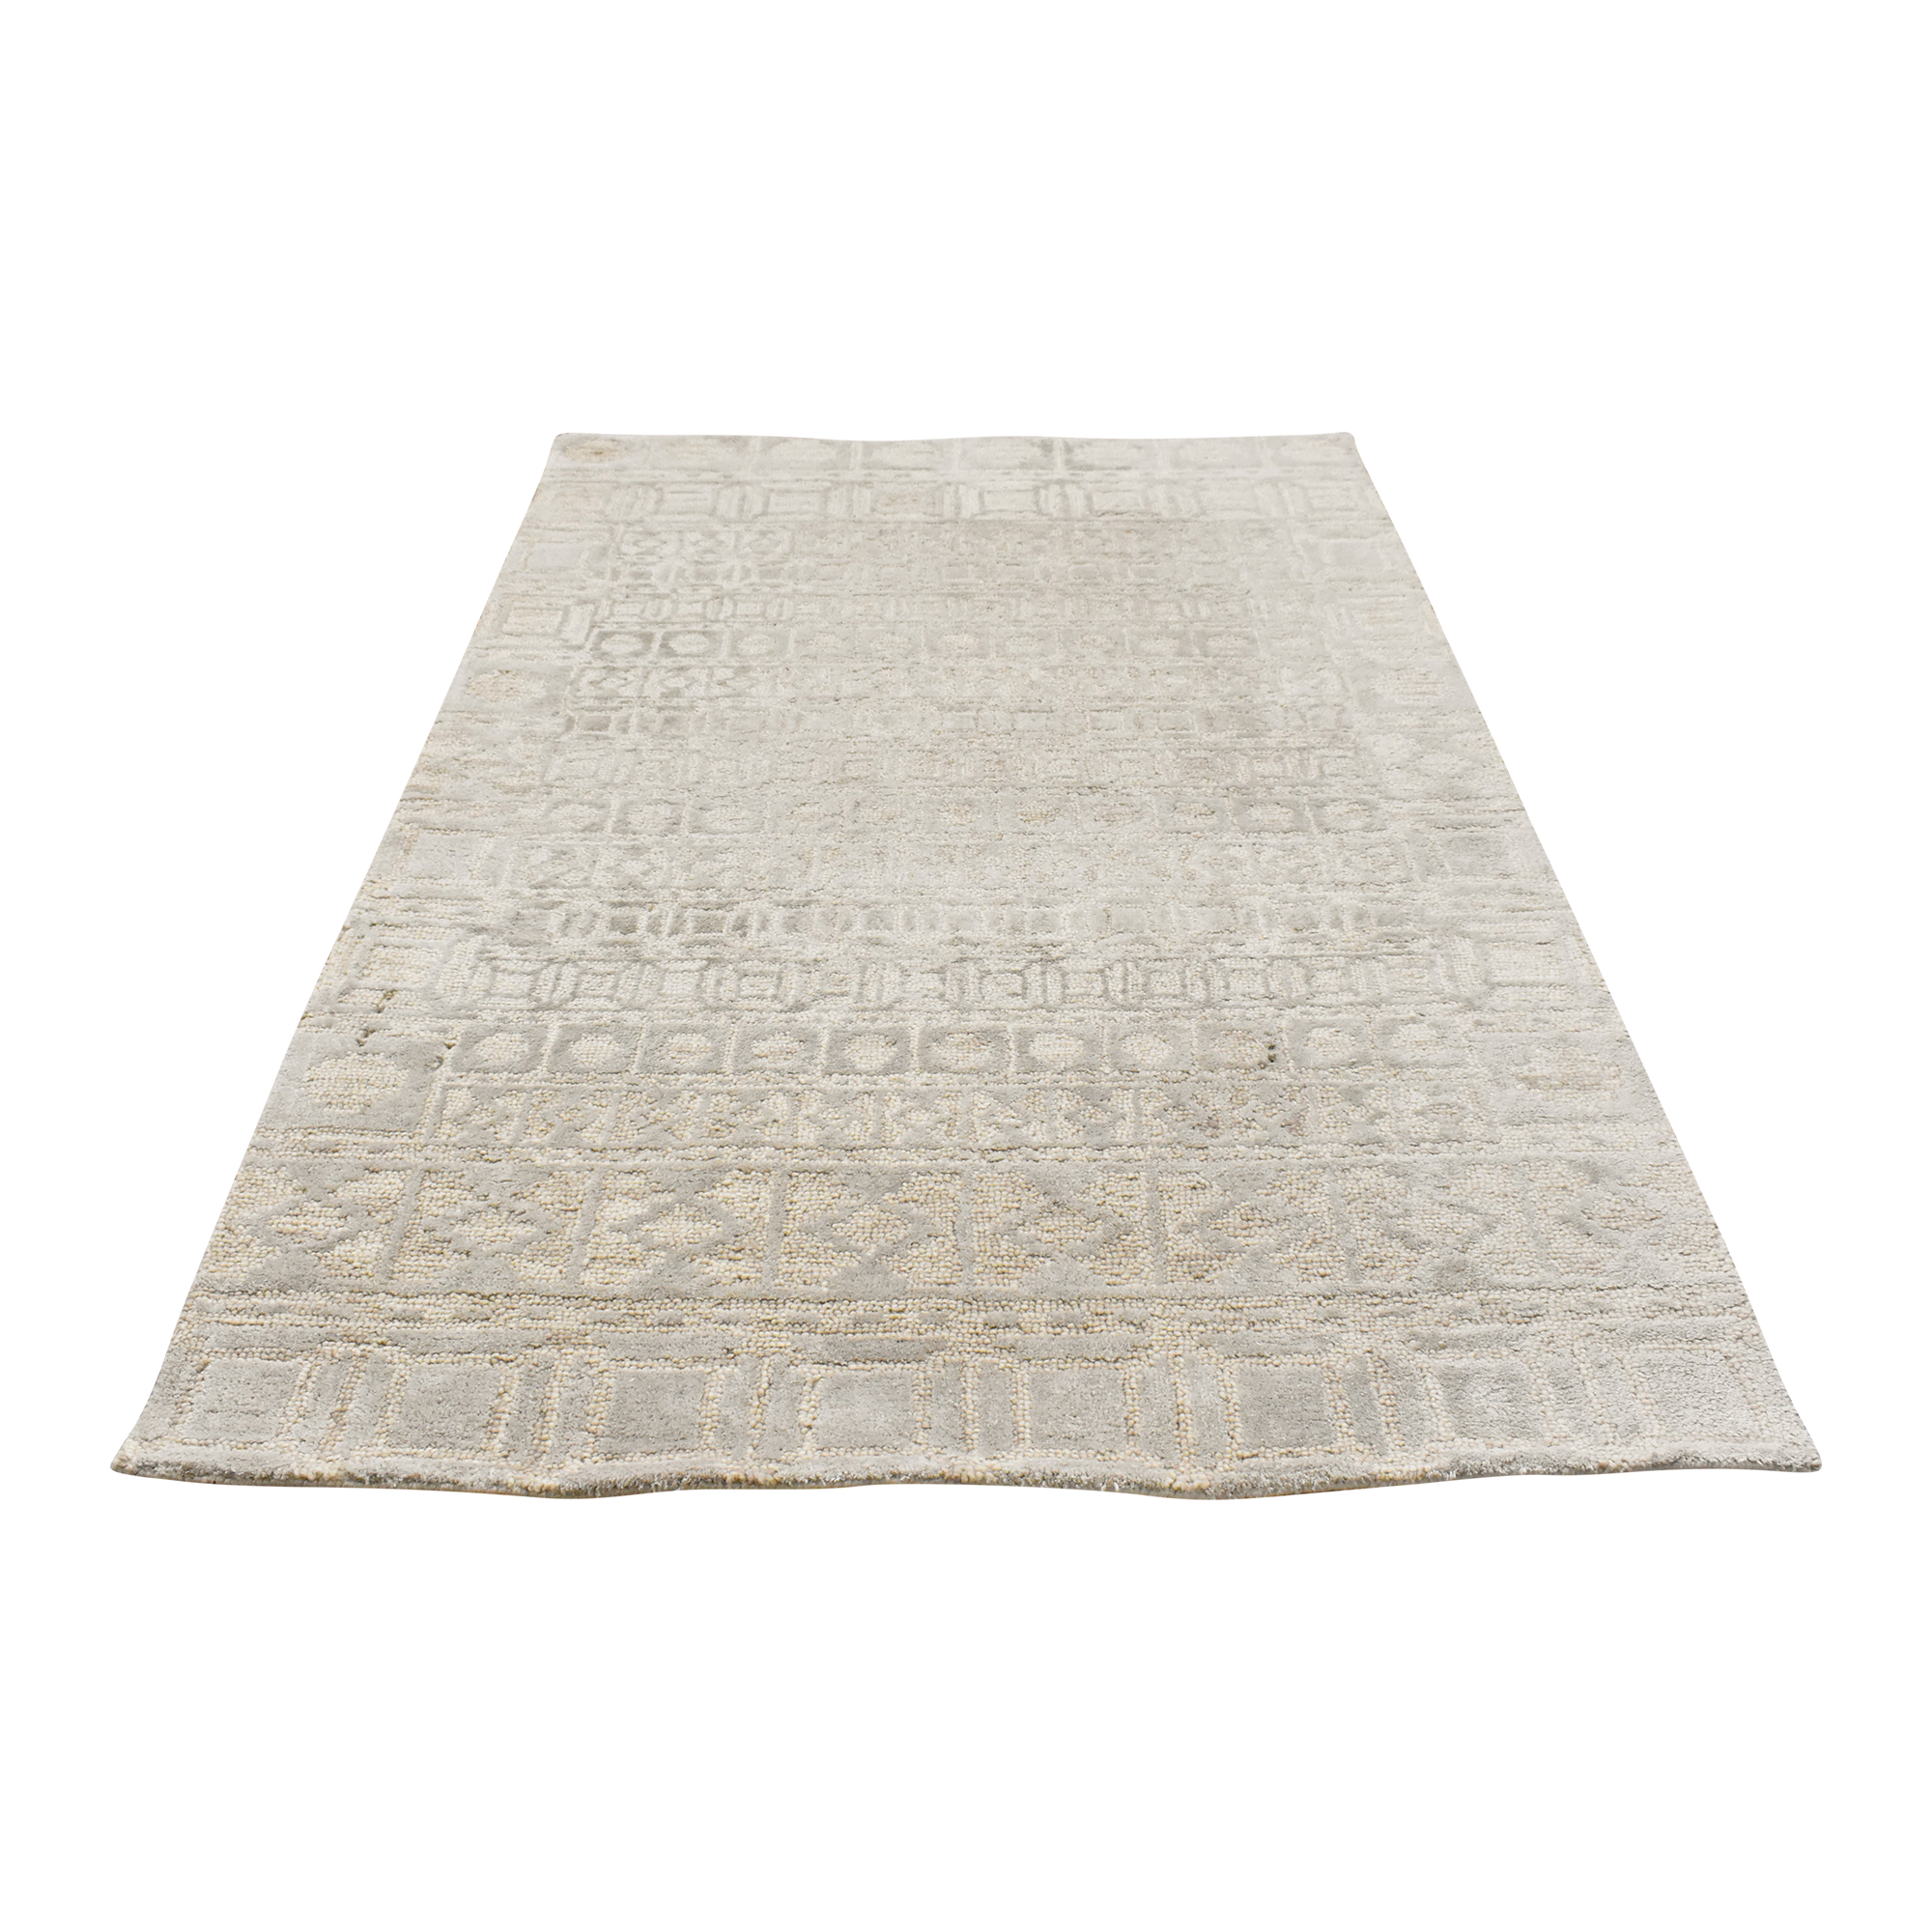 shop West Elm West Elm Deco Tiles Area Rug online